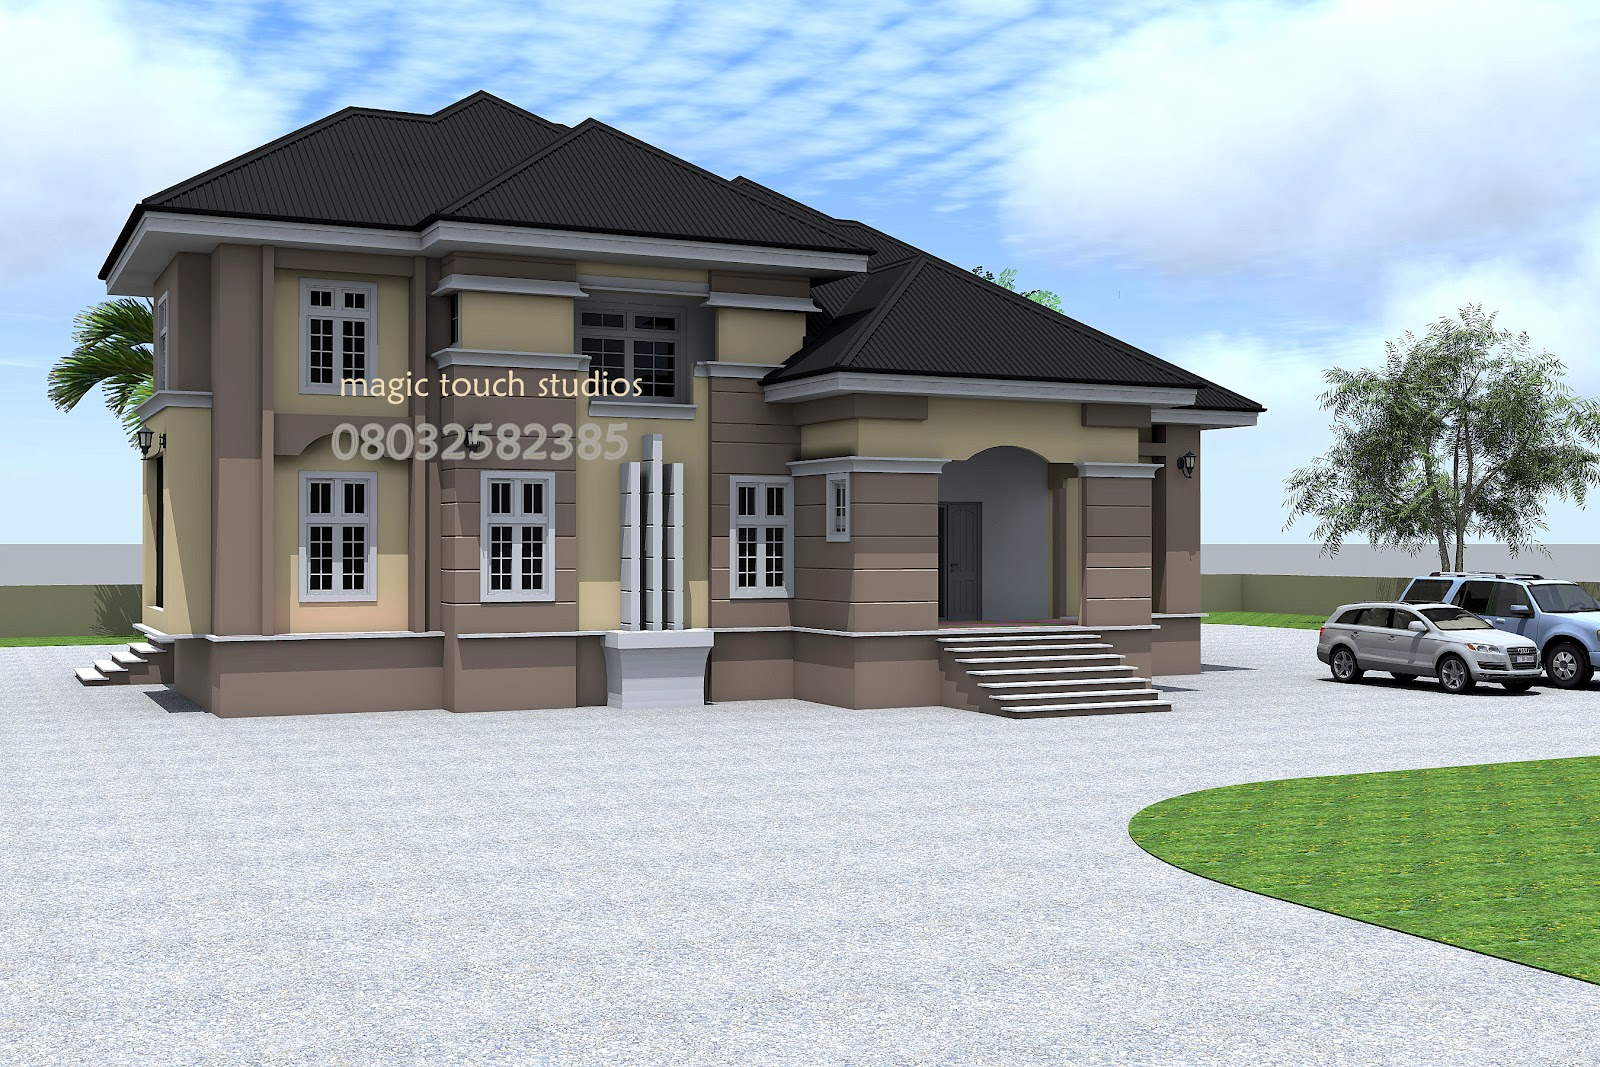 5 bedroom split level bungalow residential homes and for Bungalow plans